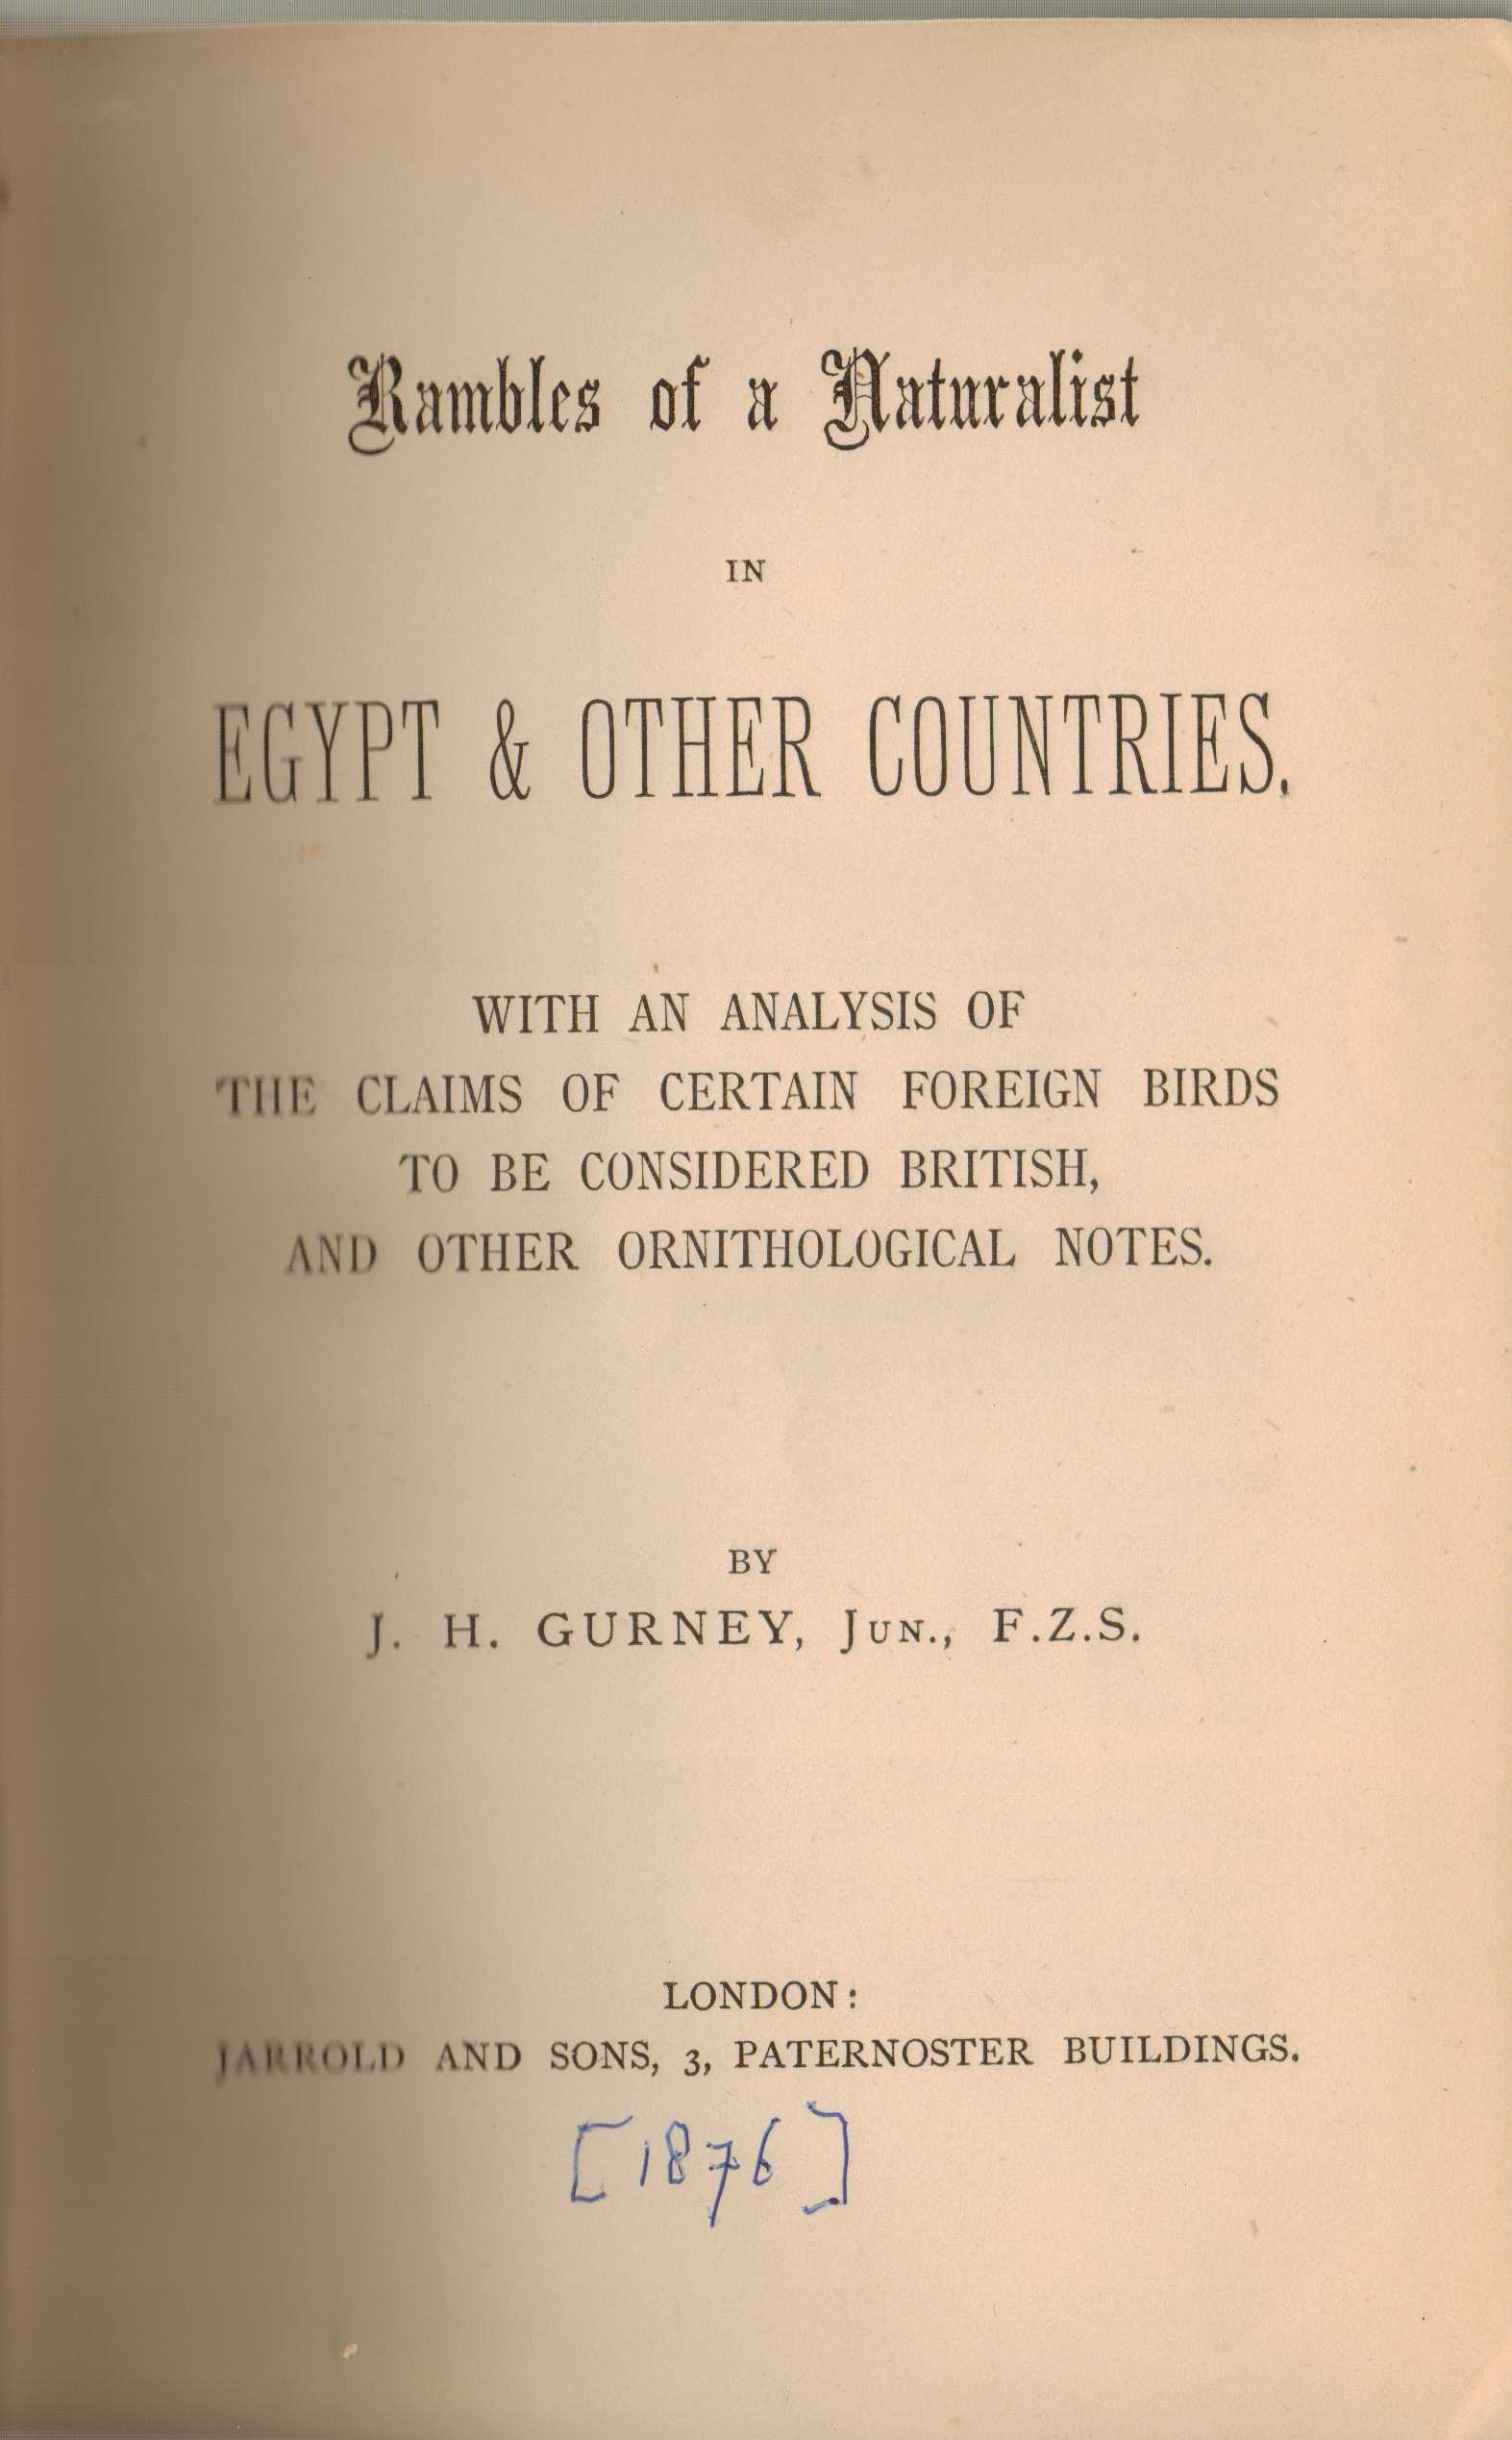 Image for Rambles of a Naturalist in Egypt & Other Countries with an analysis of the claims of certain foreign birds to be considered British, and other ornithological notes